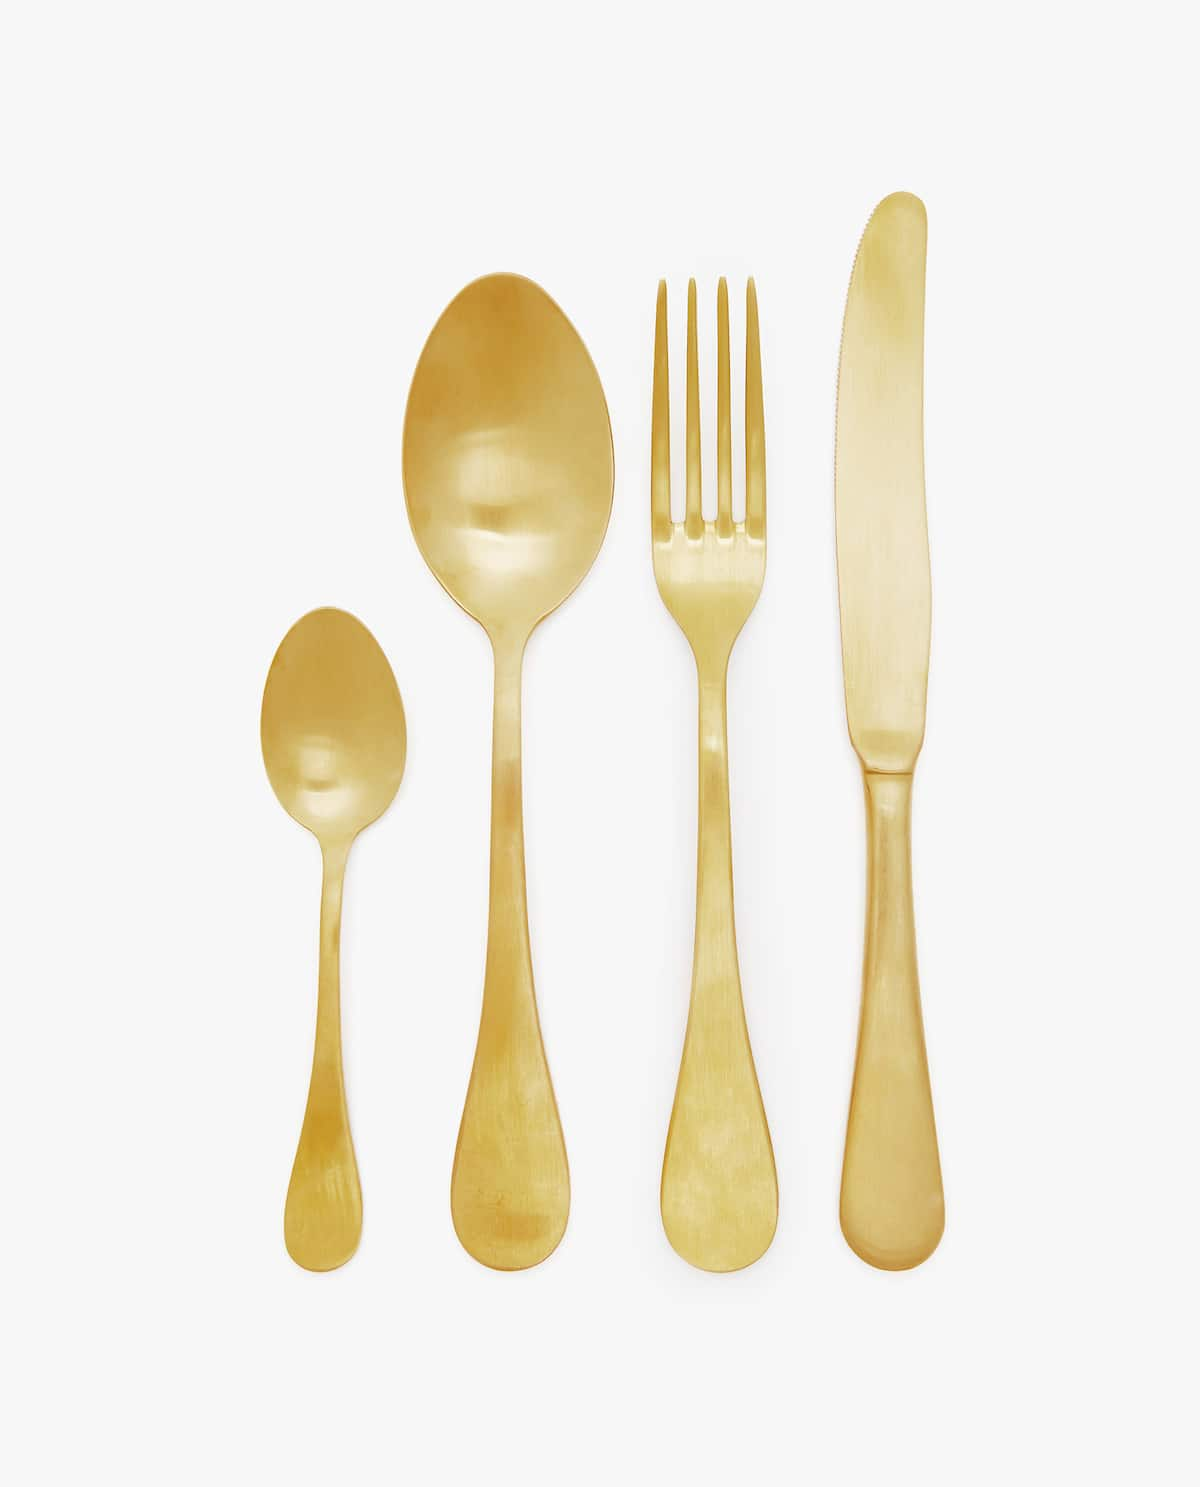 Matte gold-colored cutlery,  $7.90 - $9.90, from Zara Home   Photo:  Zara Home